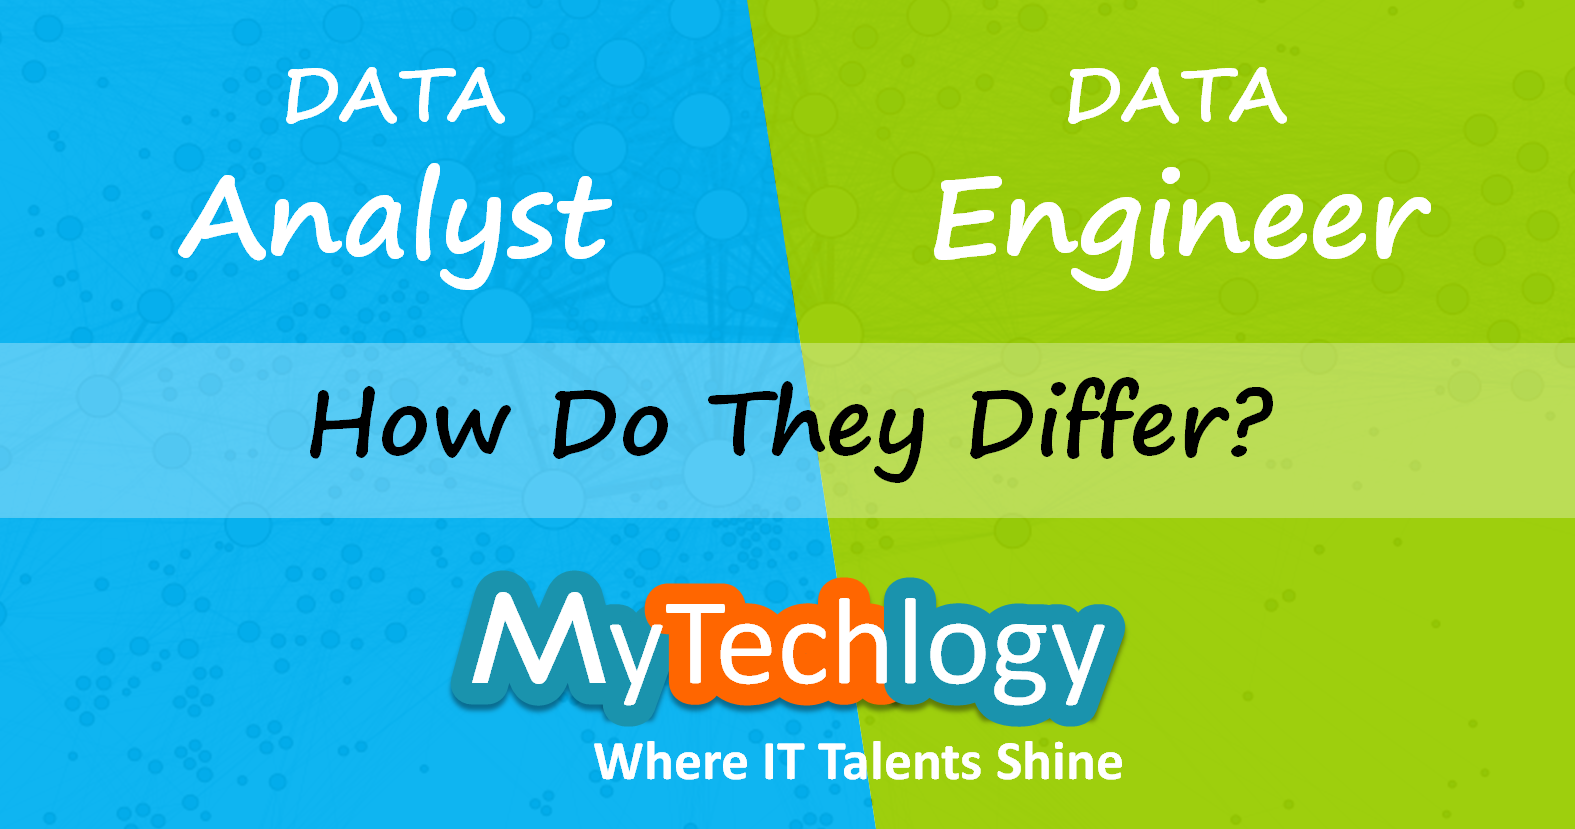 Data Analyst Vs Data Engineer: How Do They Differ? - 21577